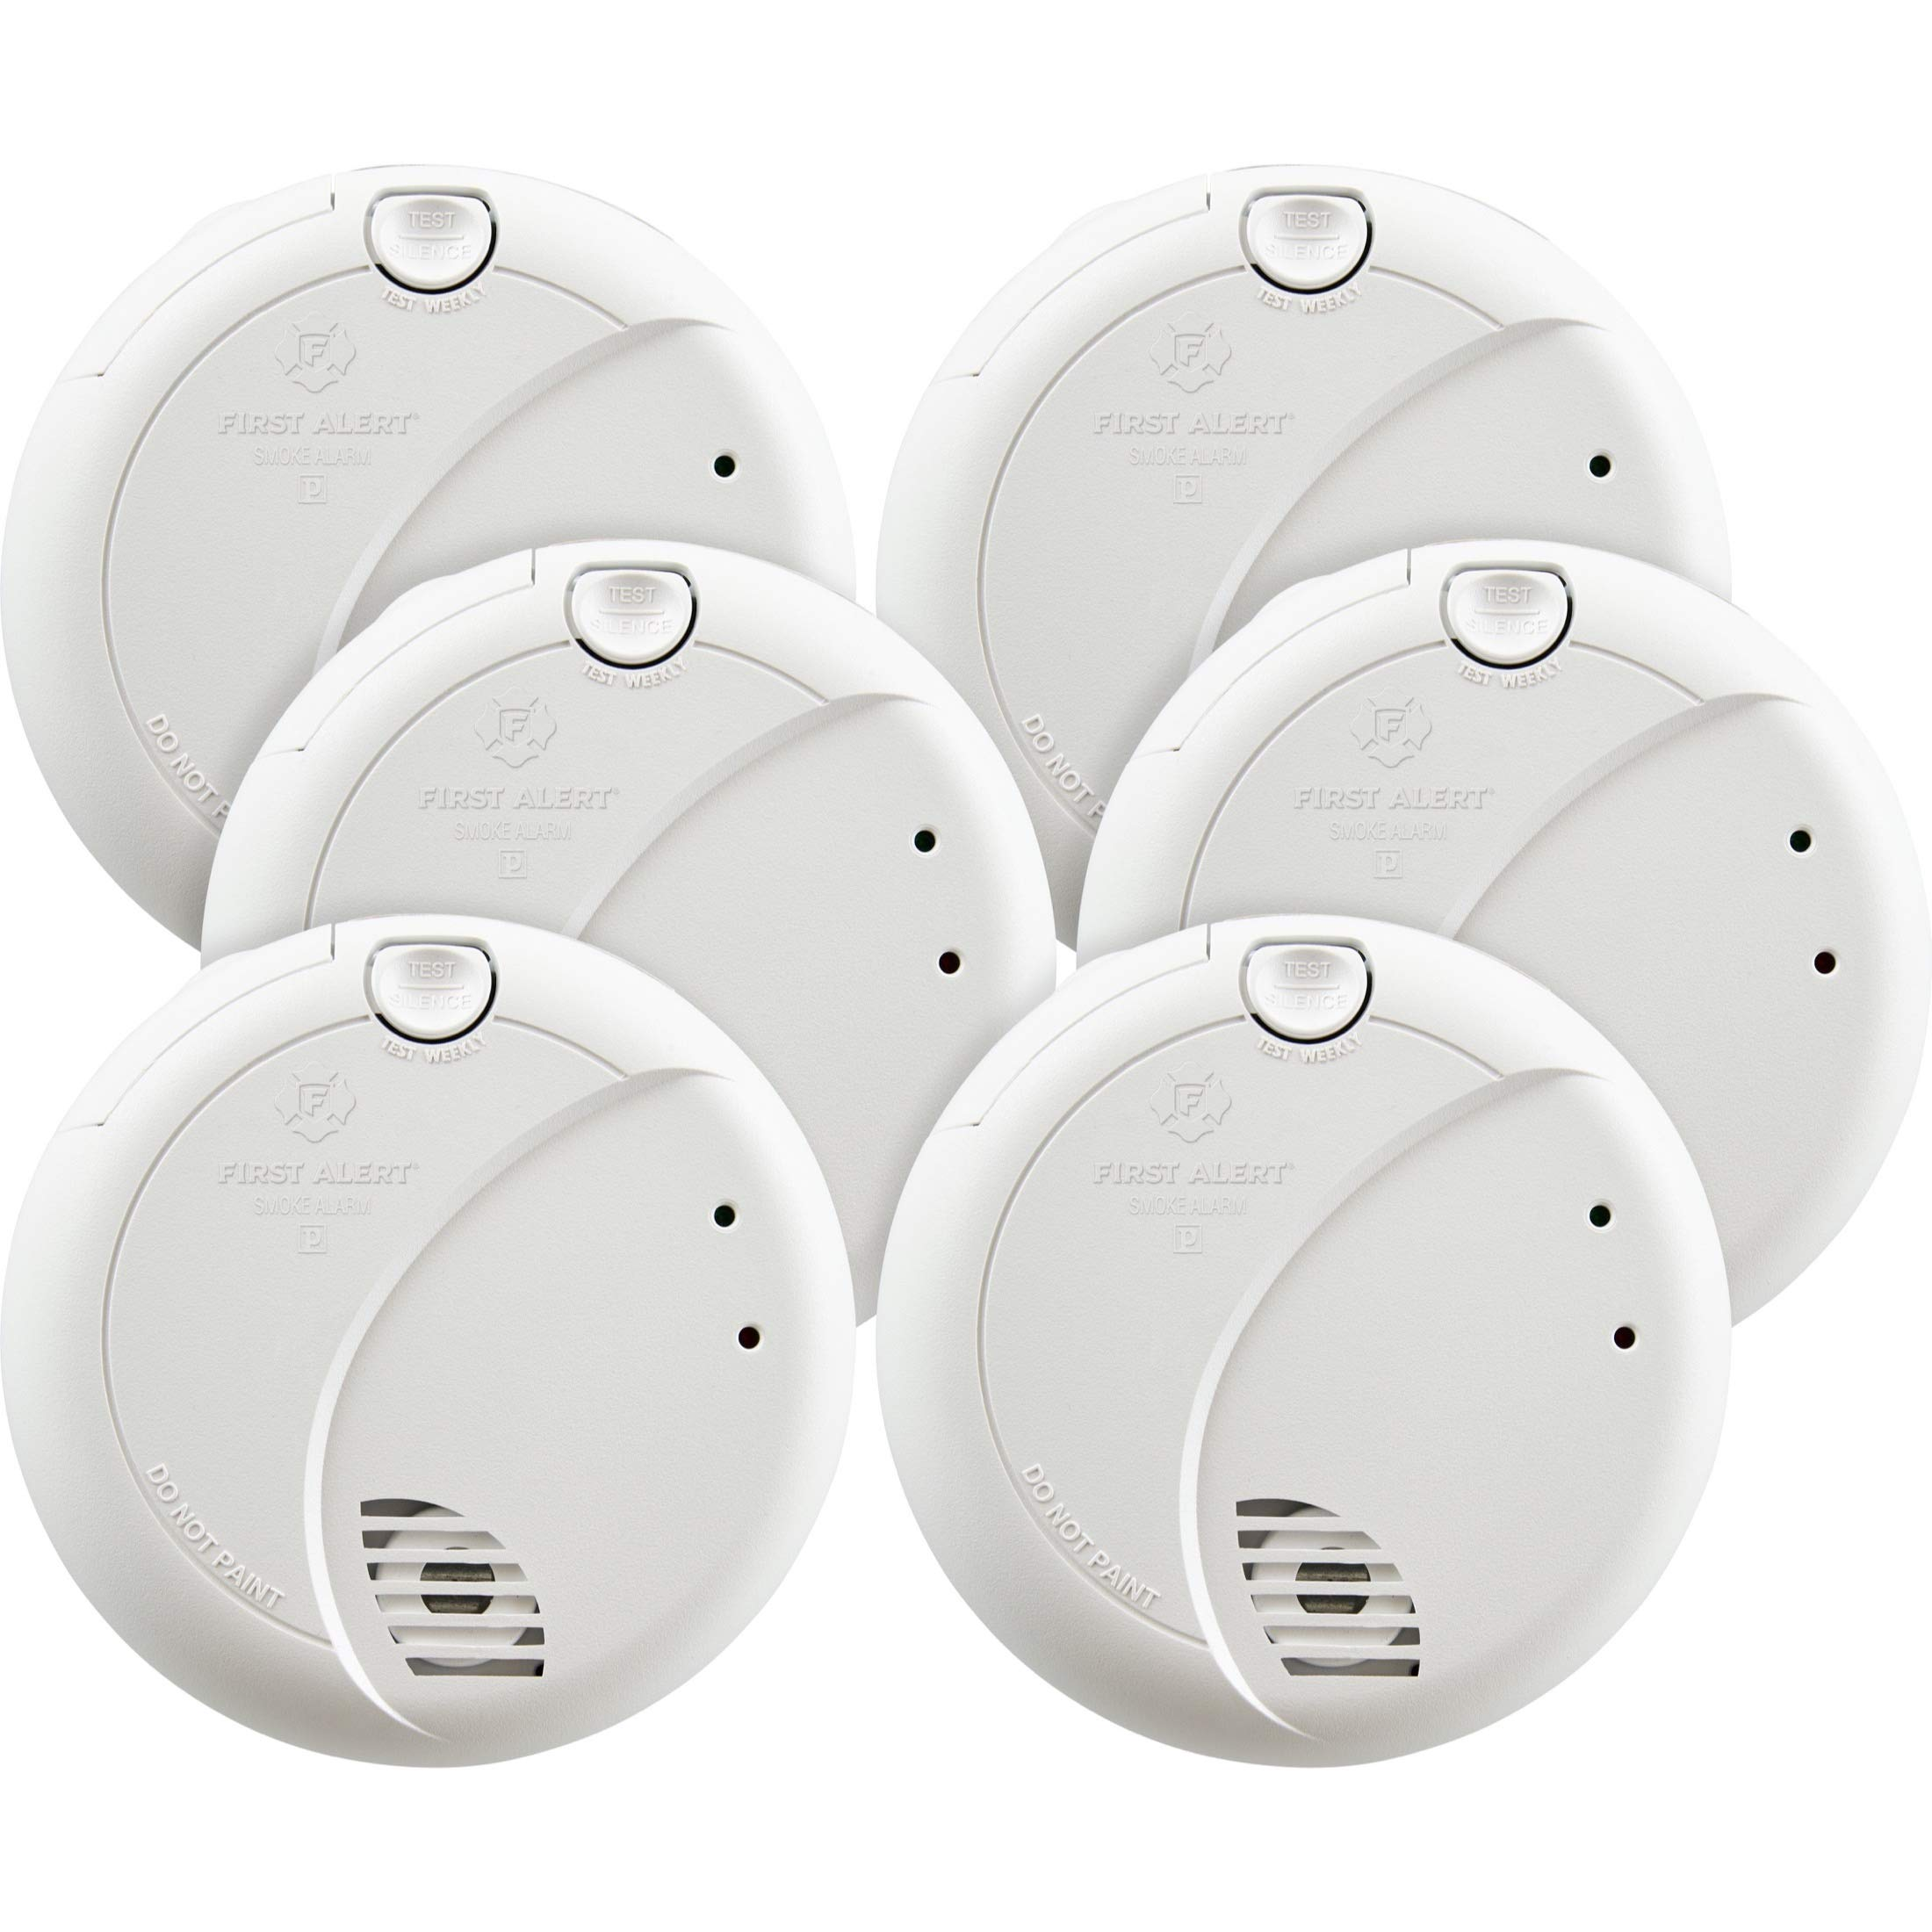 First Alert BRK 7010BFF-6 Hardwired Smoke Detector with Photoelectric Sensor and Battery Backup, 6-Pack